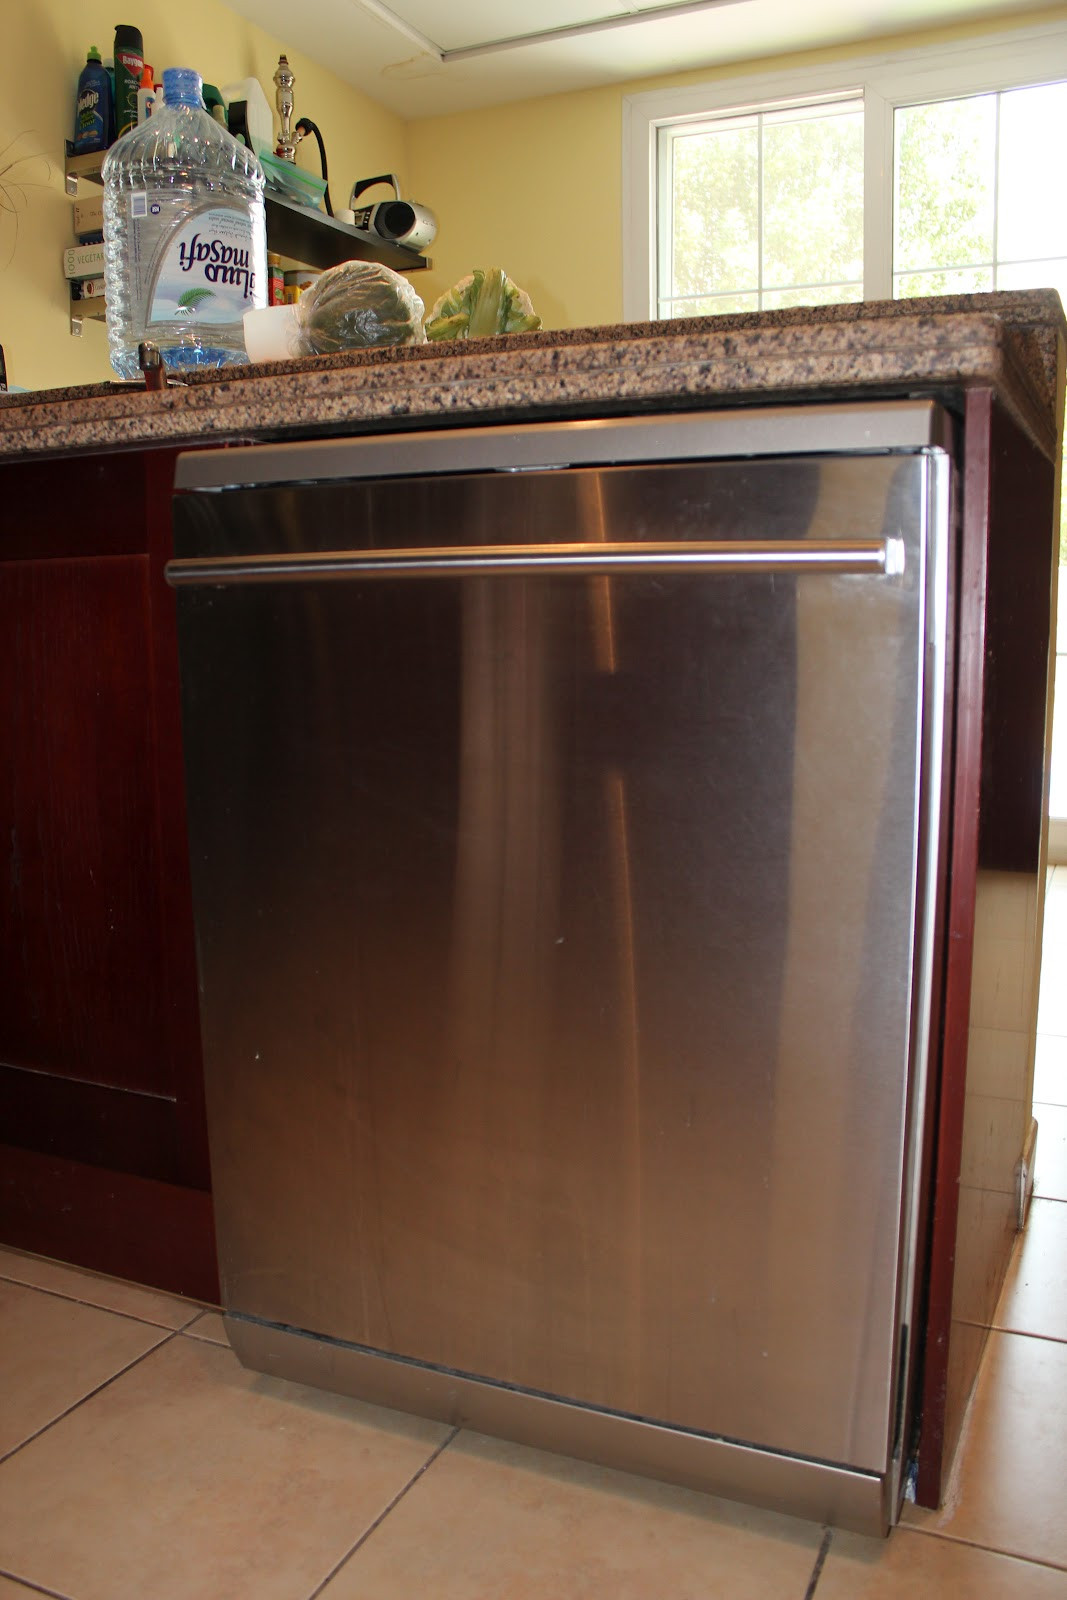 Table Top Dishwasher Dubai : LG Dishwasher with hidden control panel - 900AED